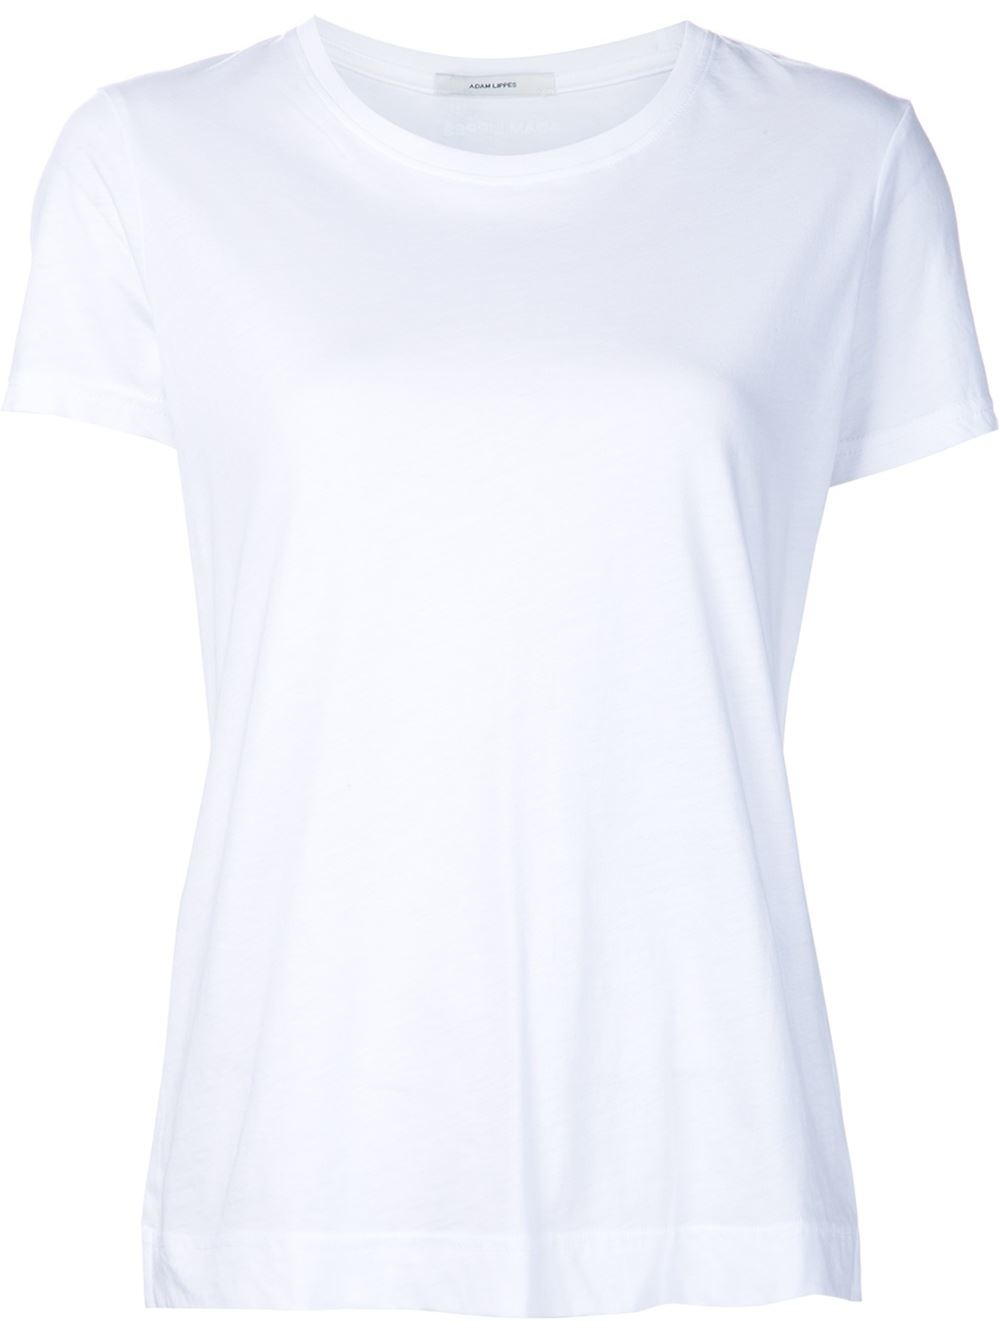 Adam lippes round neck t shirt in white lyst for Adam lippes t shirt